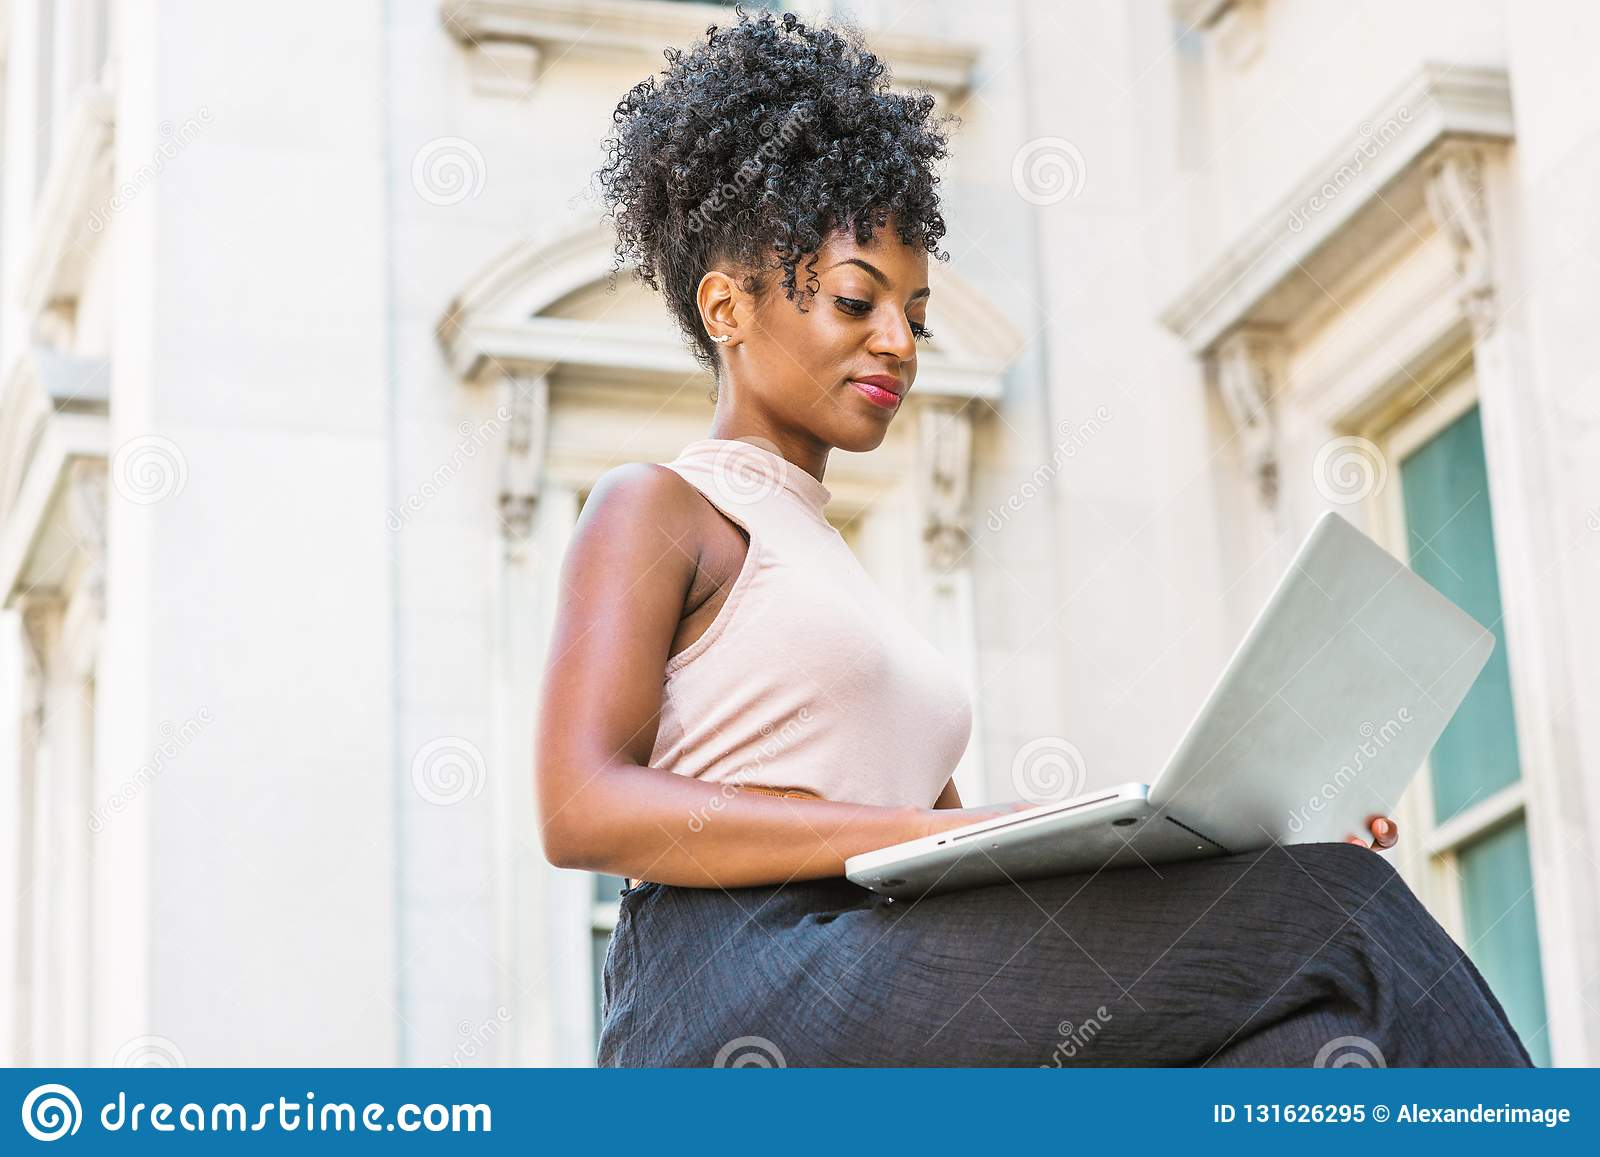 Way To Success Young African American Woman With Afro Hairstyle